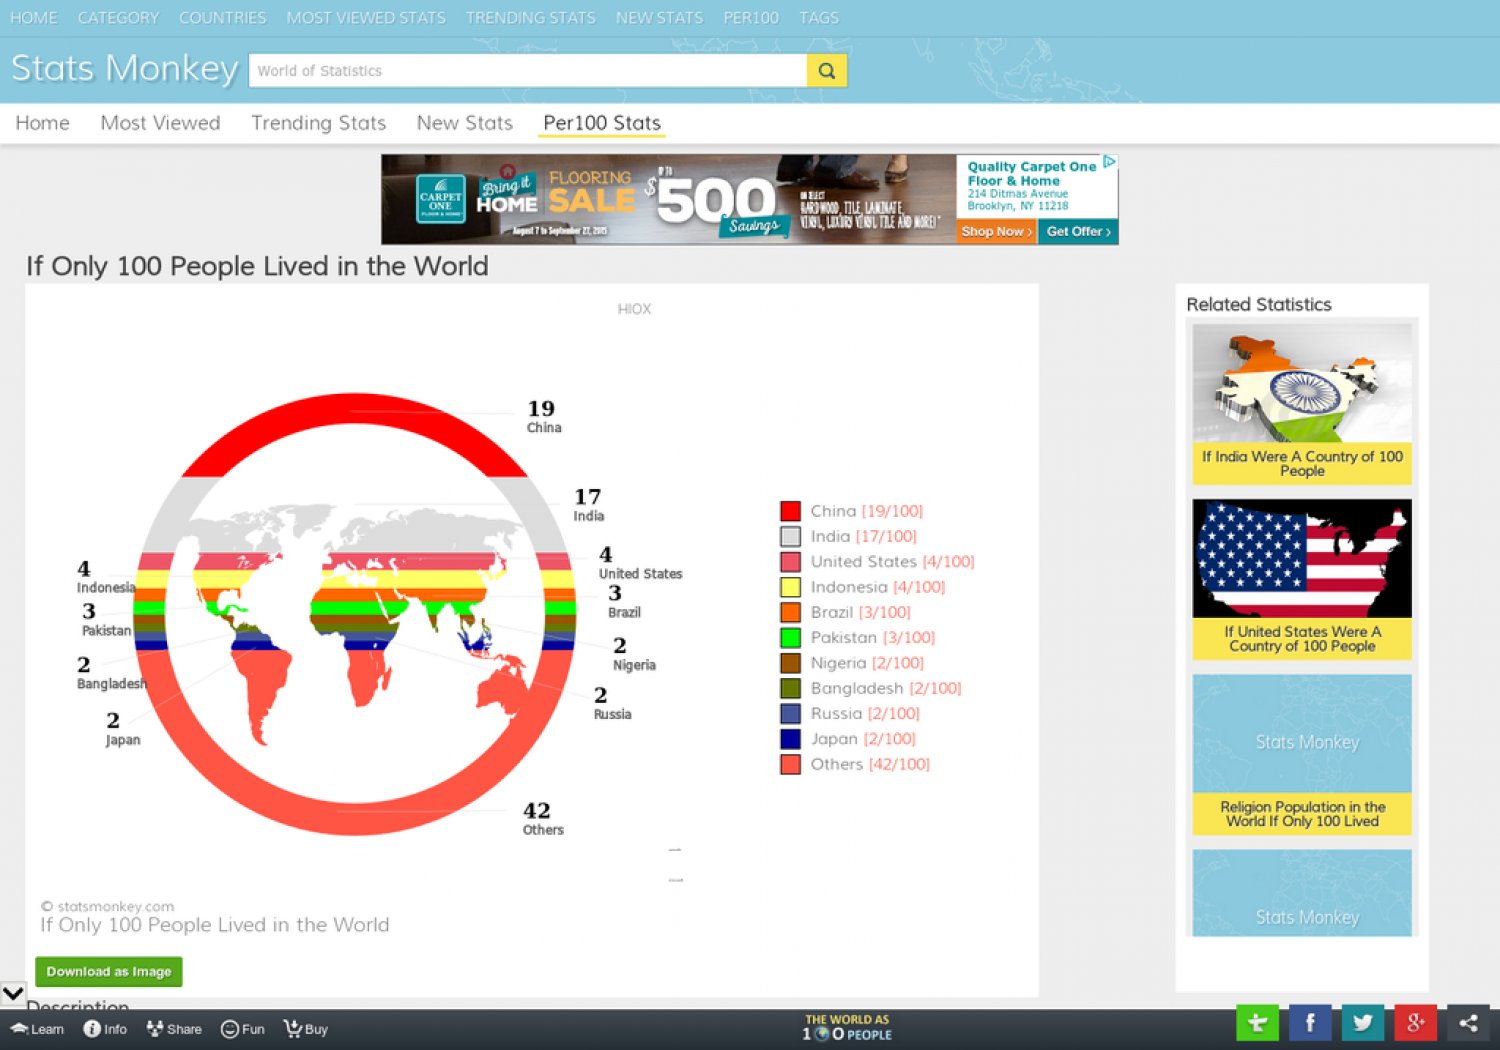 If Only 100 People Lived in the World Infographic